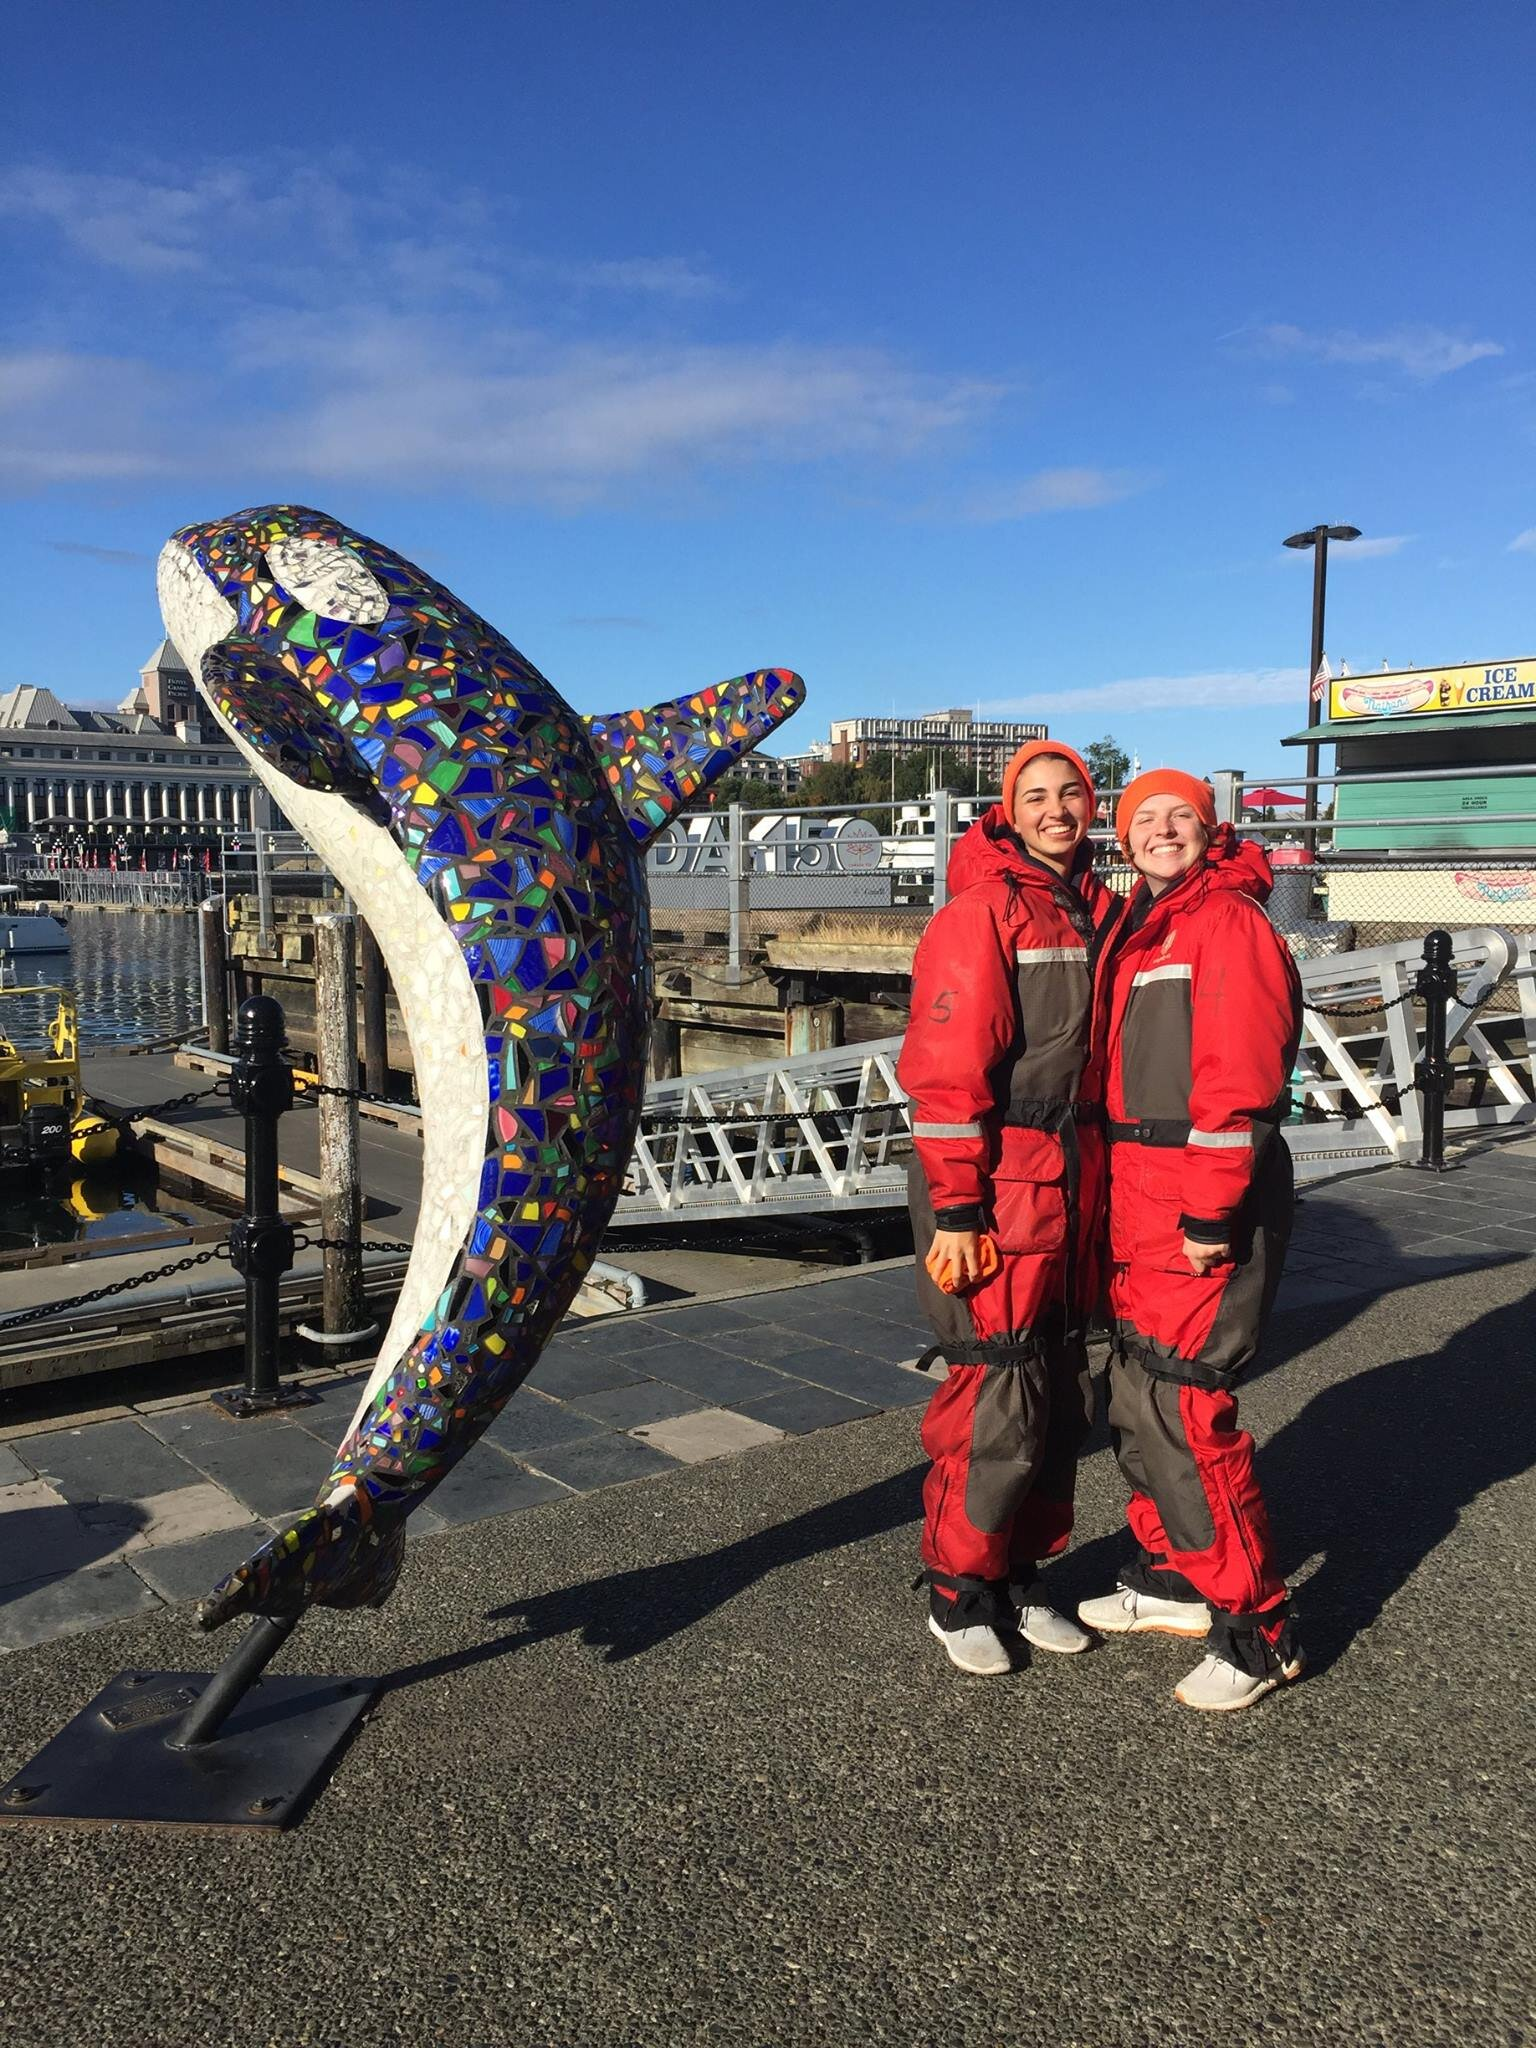 Whale watching in victoria BC